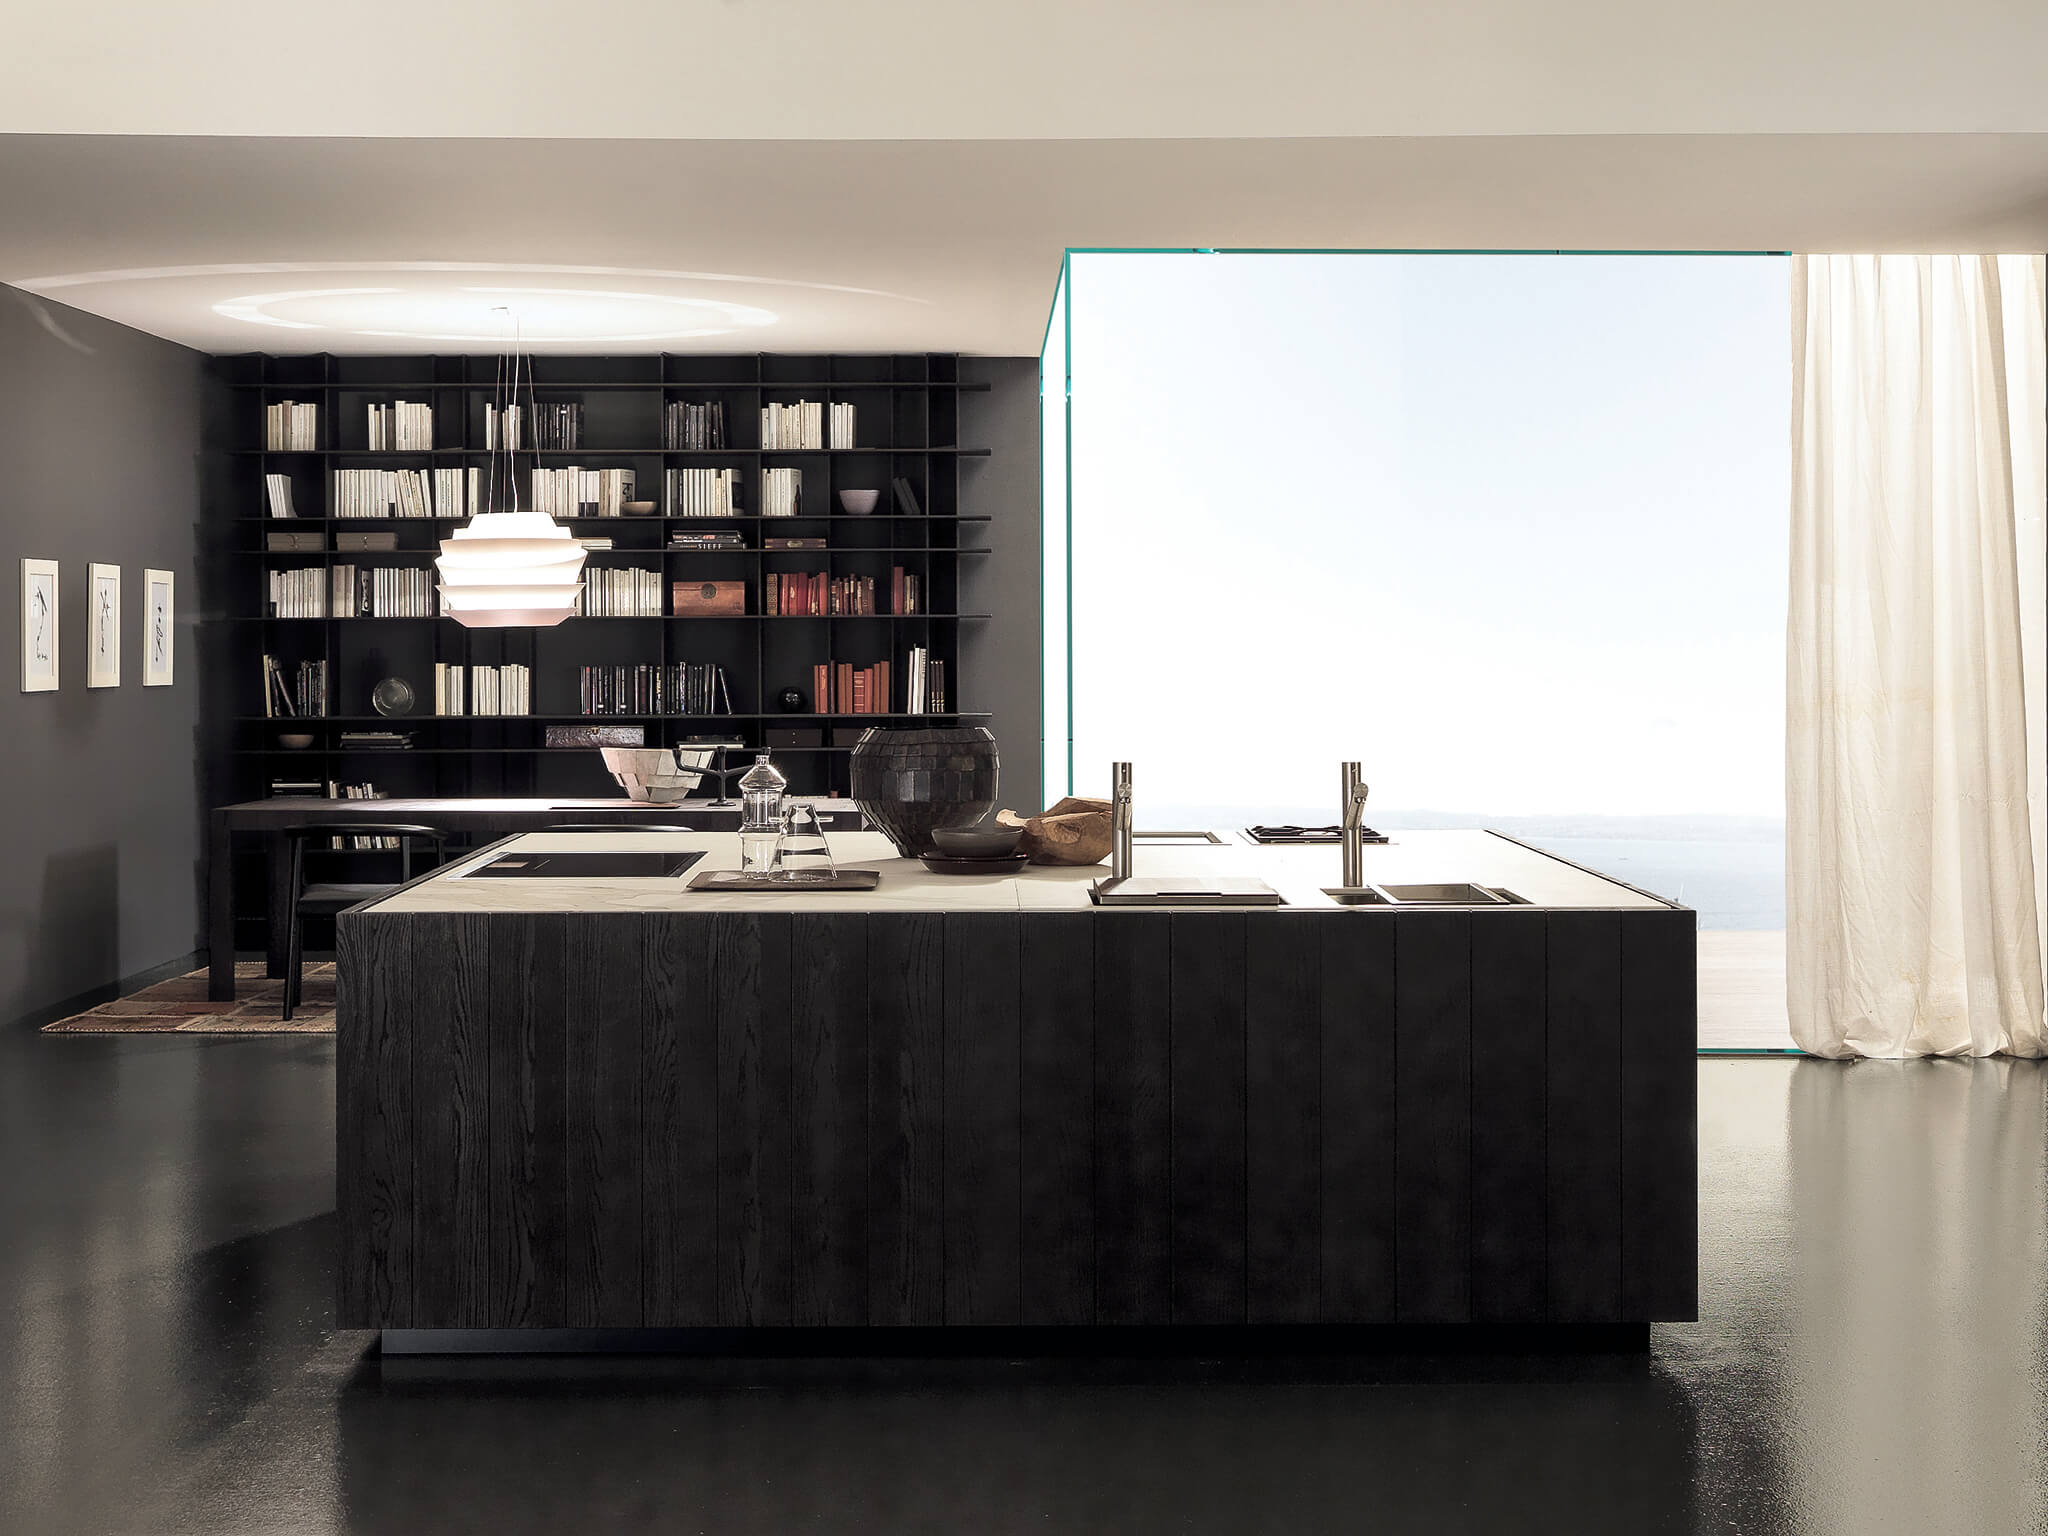 float kitchen cabinetry archisesto chicago